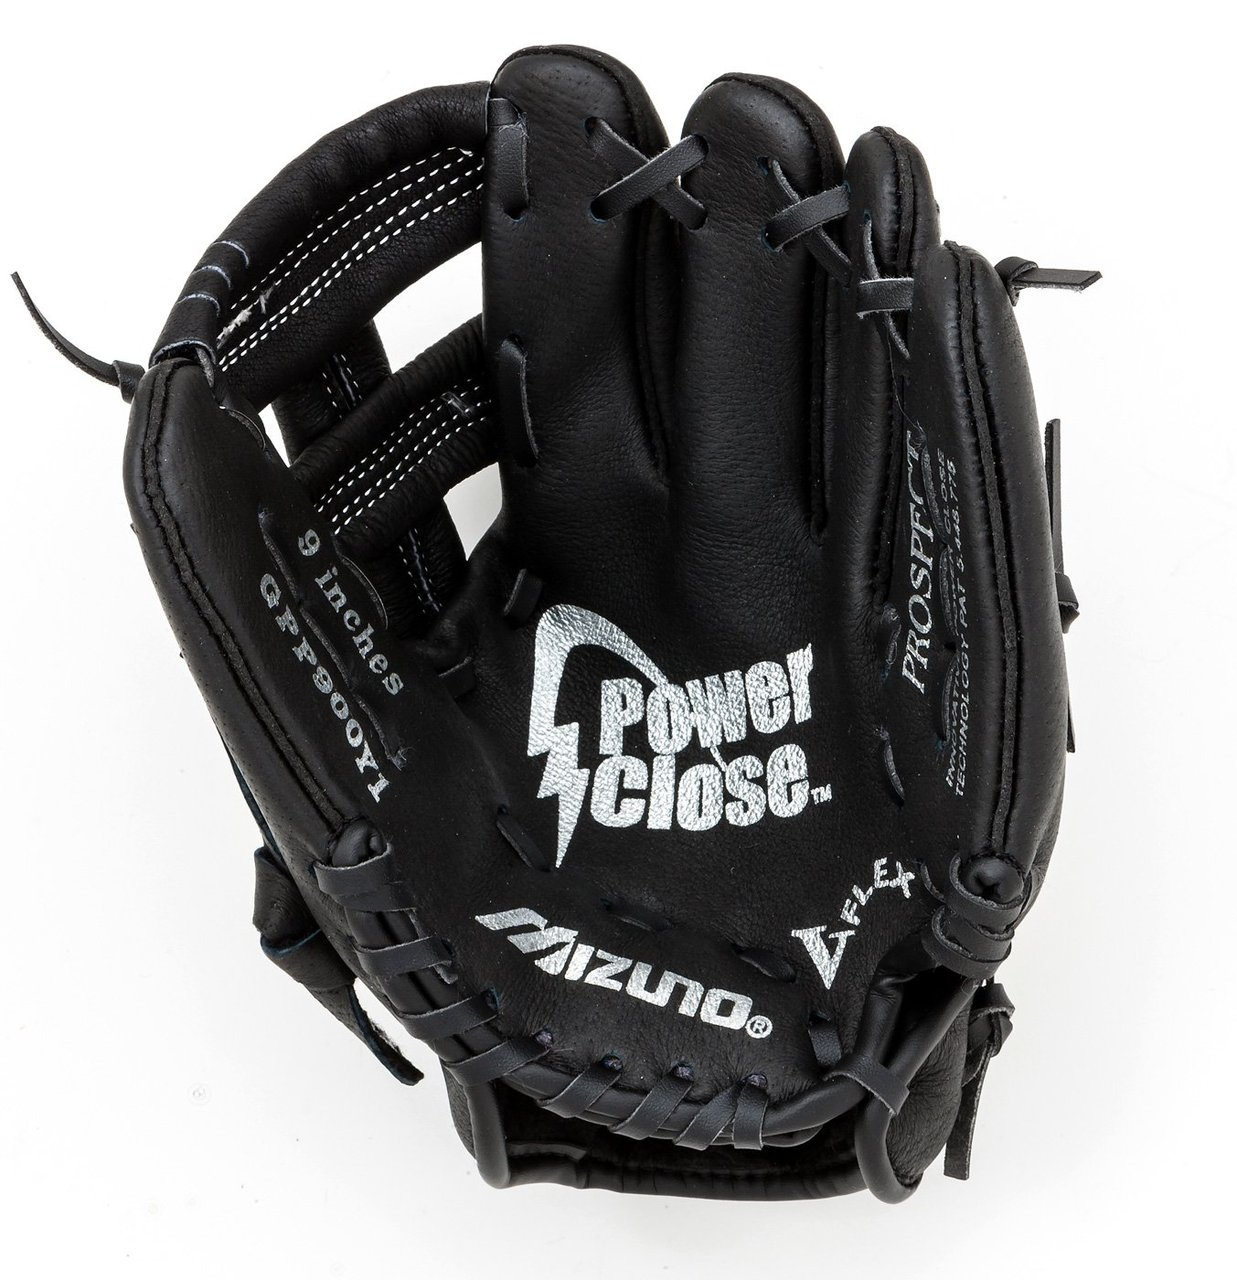 mizuno-gpp900y1-youth-prospect-series-9-inch-baseball-glove-right-hand-throw GPP900Y1-Right Hand Throw Mizuno 041969125489 Mizuno Prospect series baseball gloves have patent pending heel flex technology